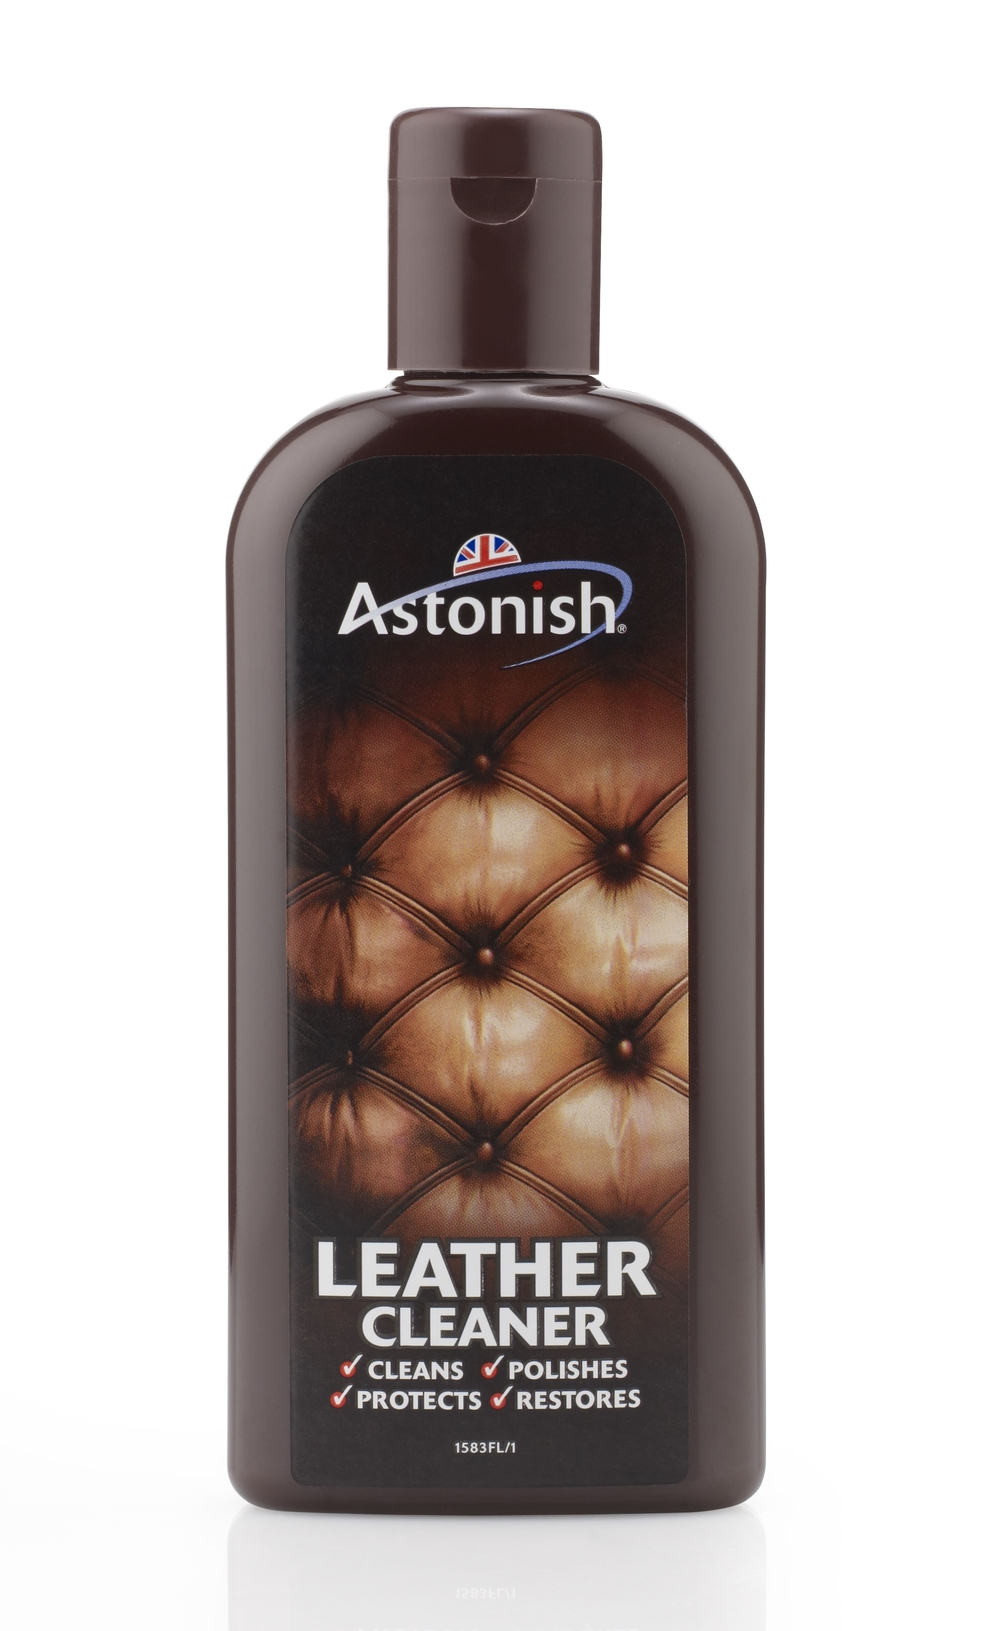 Astonish Leather Cream Cleaner 235ml.jpg